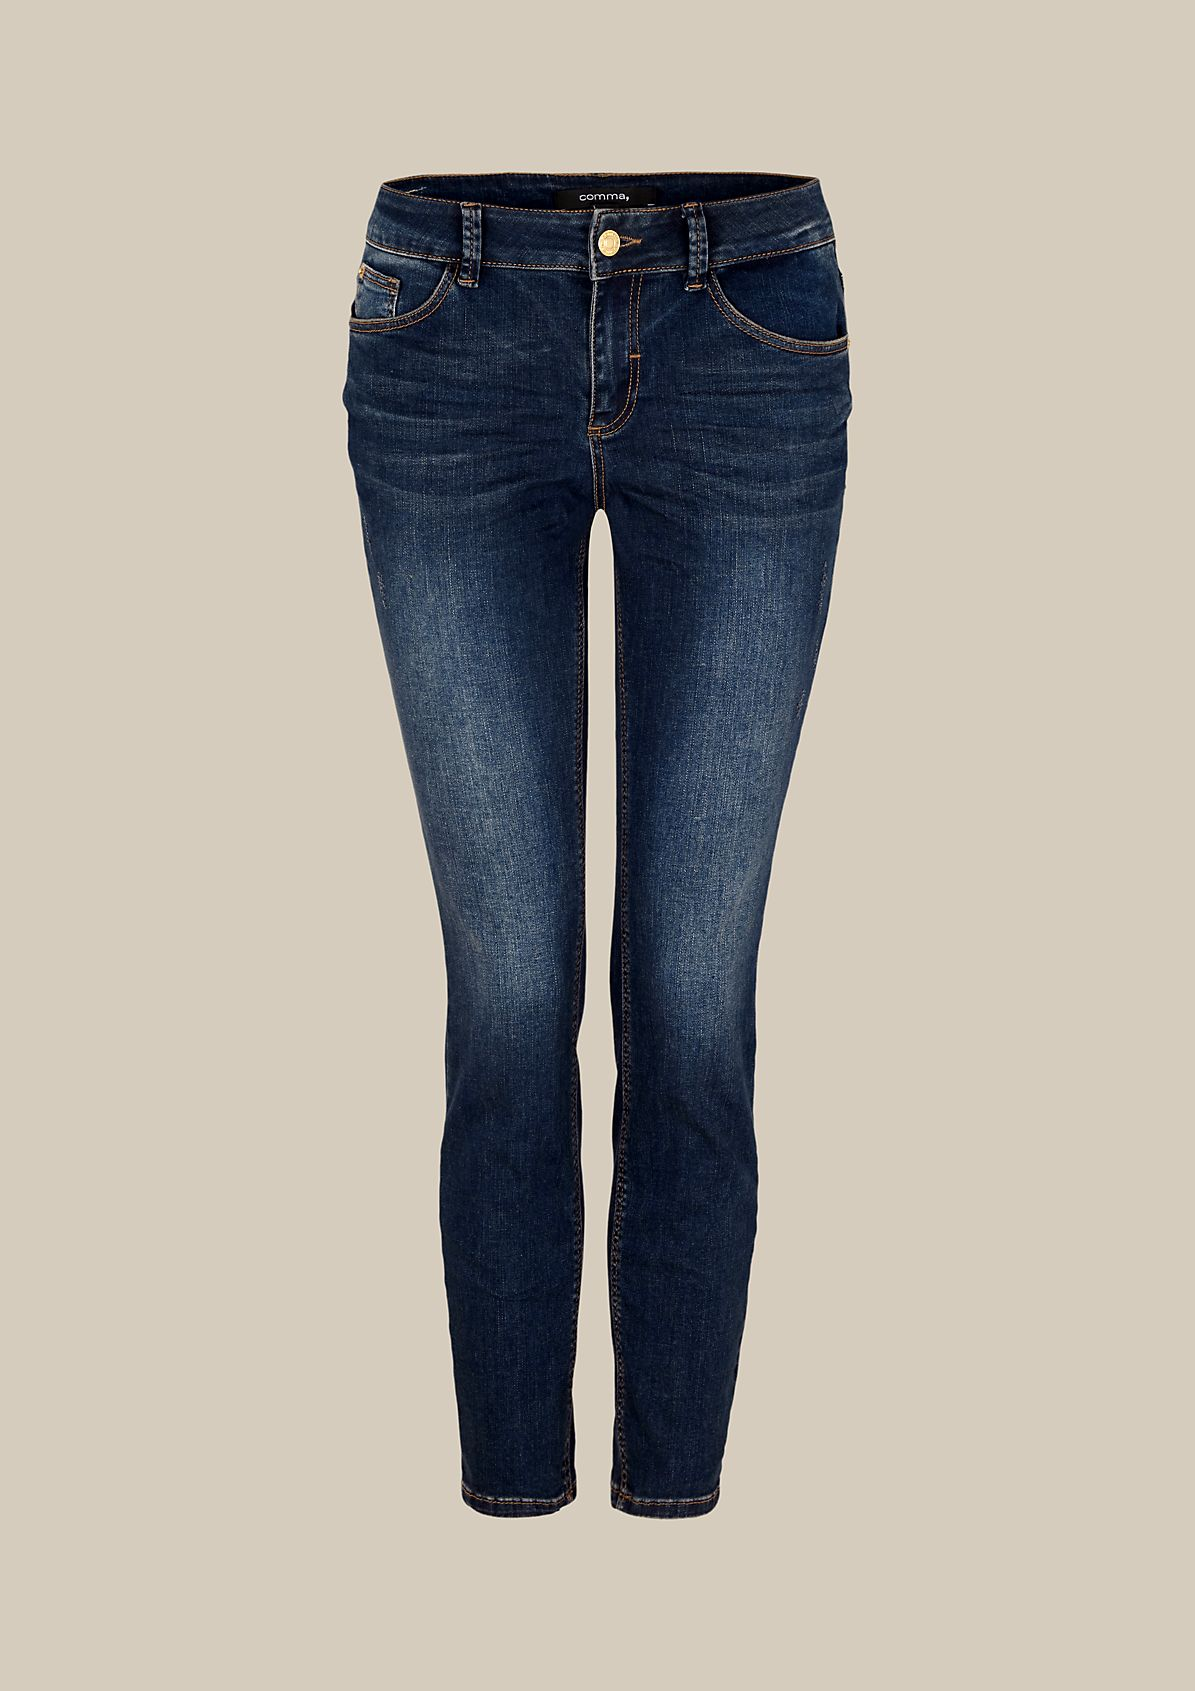 Cool jeans with a vintage finish from s.Oliver